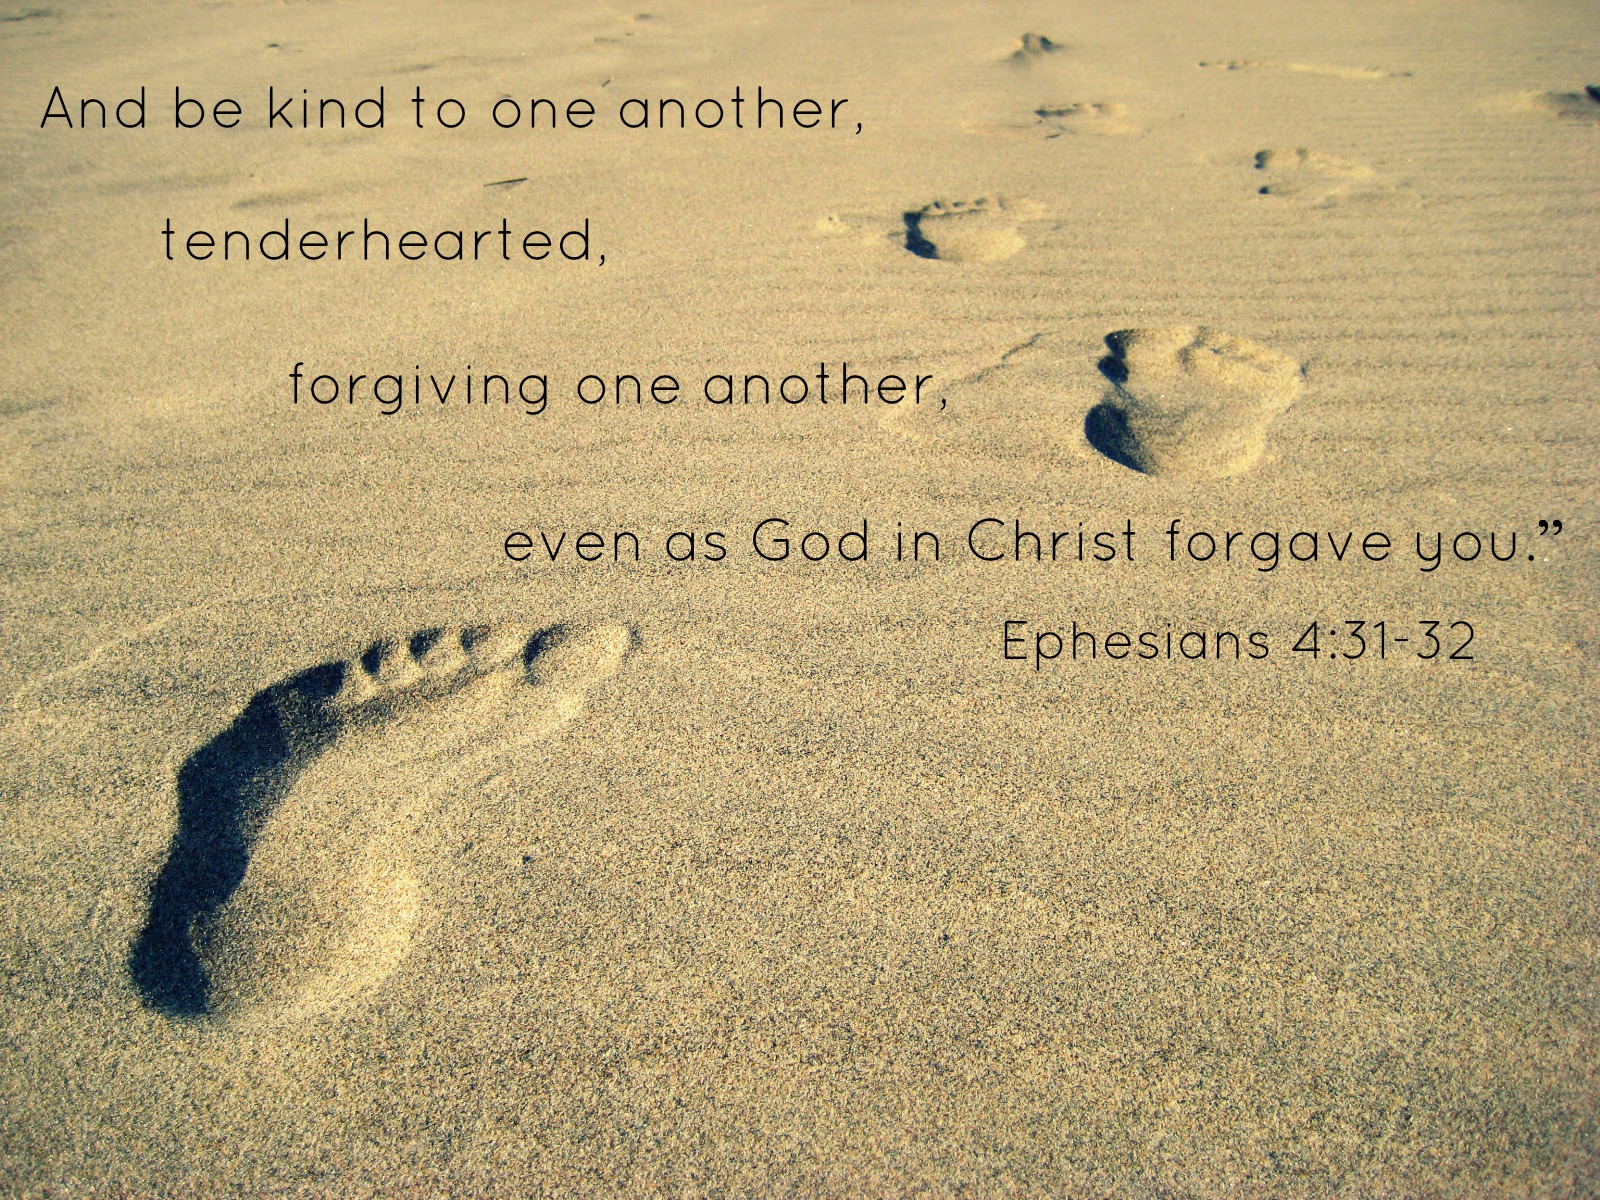 It is Hard but, Forgive and Forget